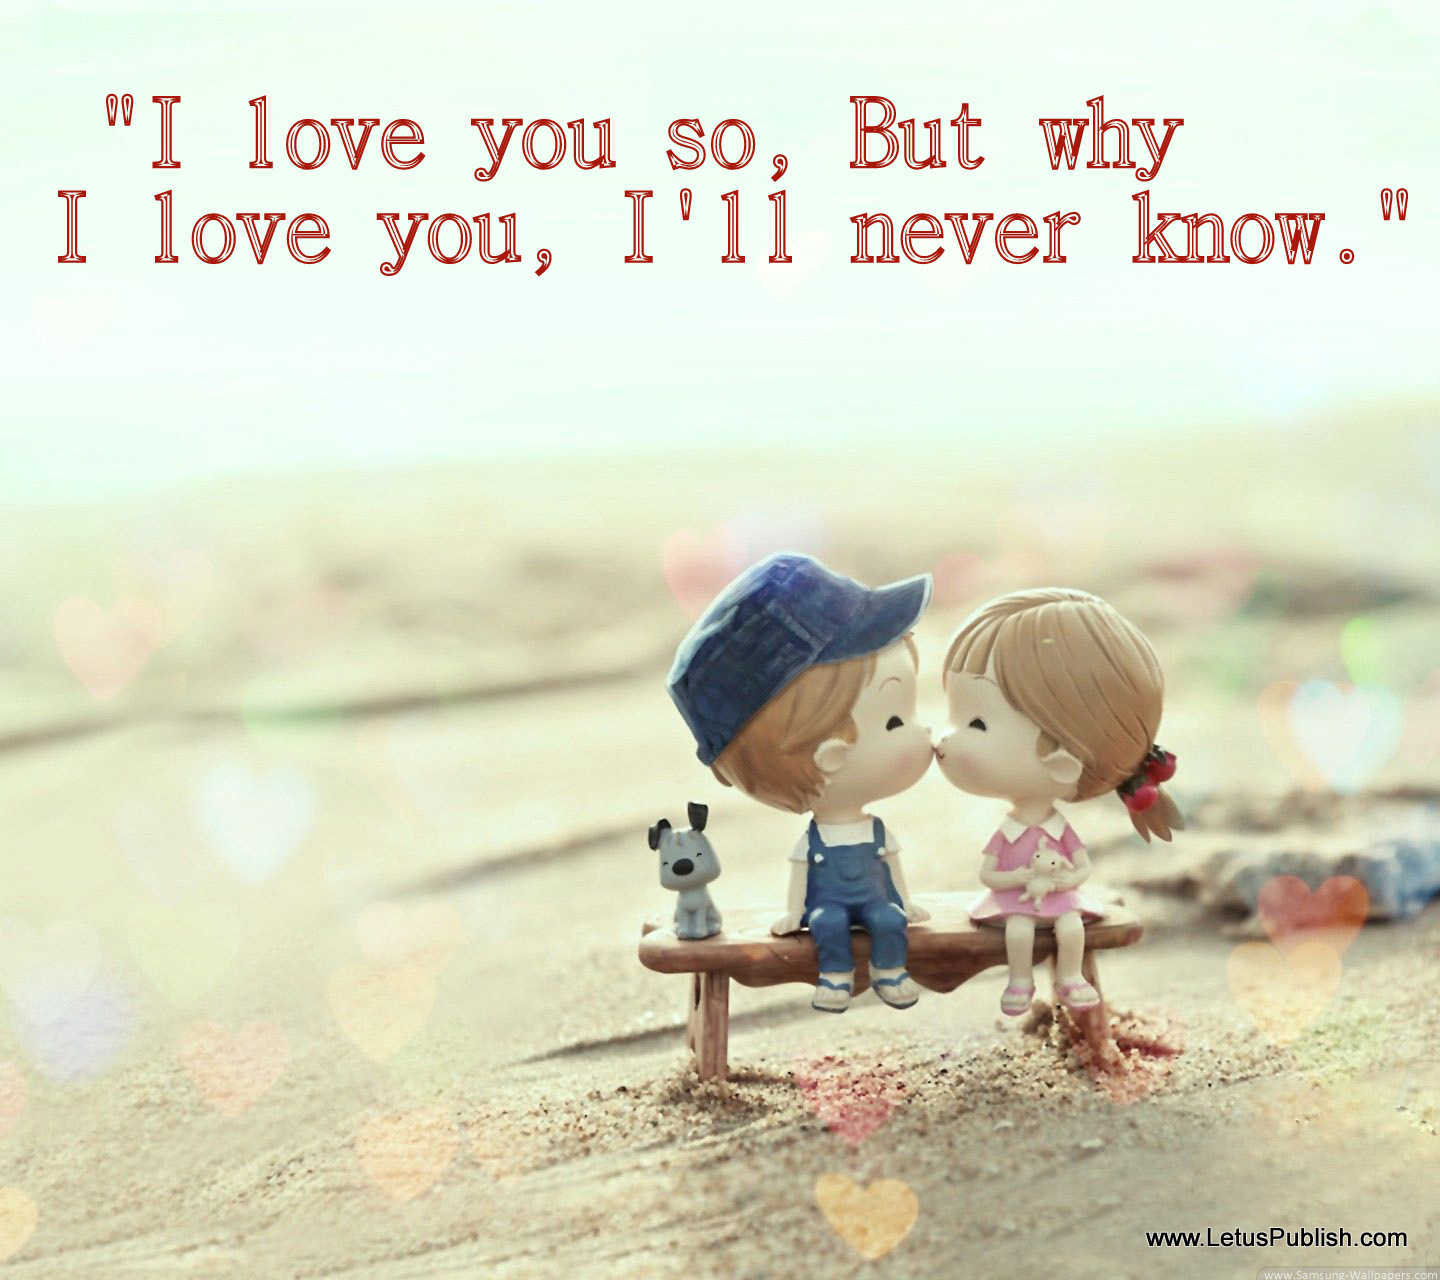 cute Love couple Hd Wallpaper With Quotes : Beautiful Romantic Love HD Wallpapers For couples - Let Us Publish